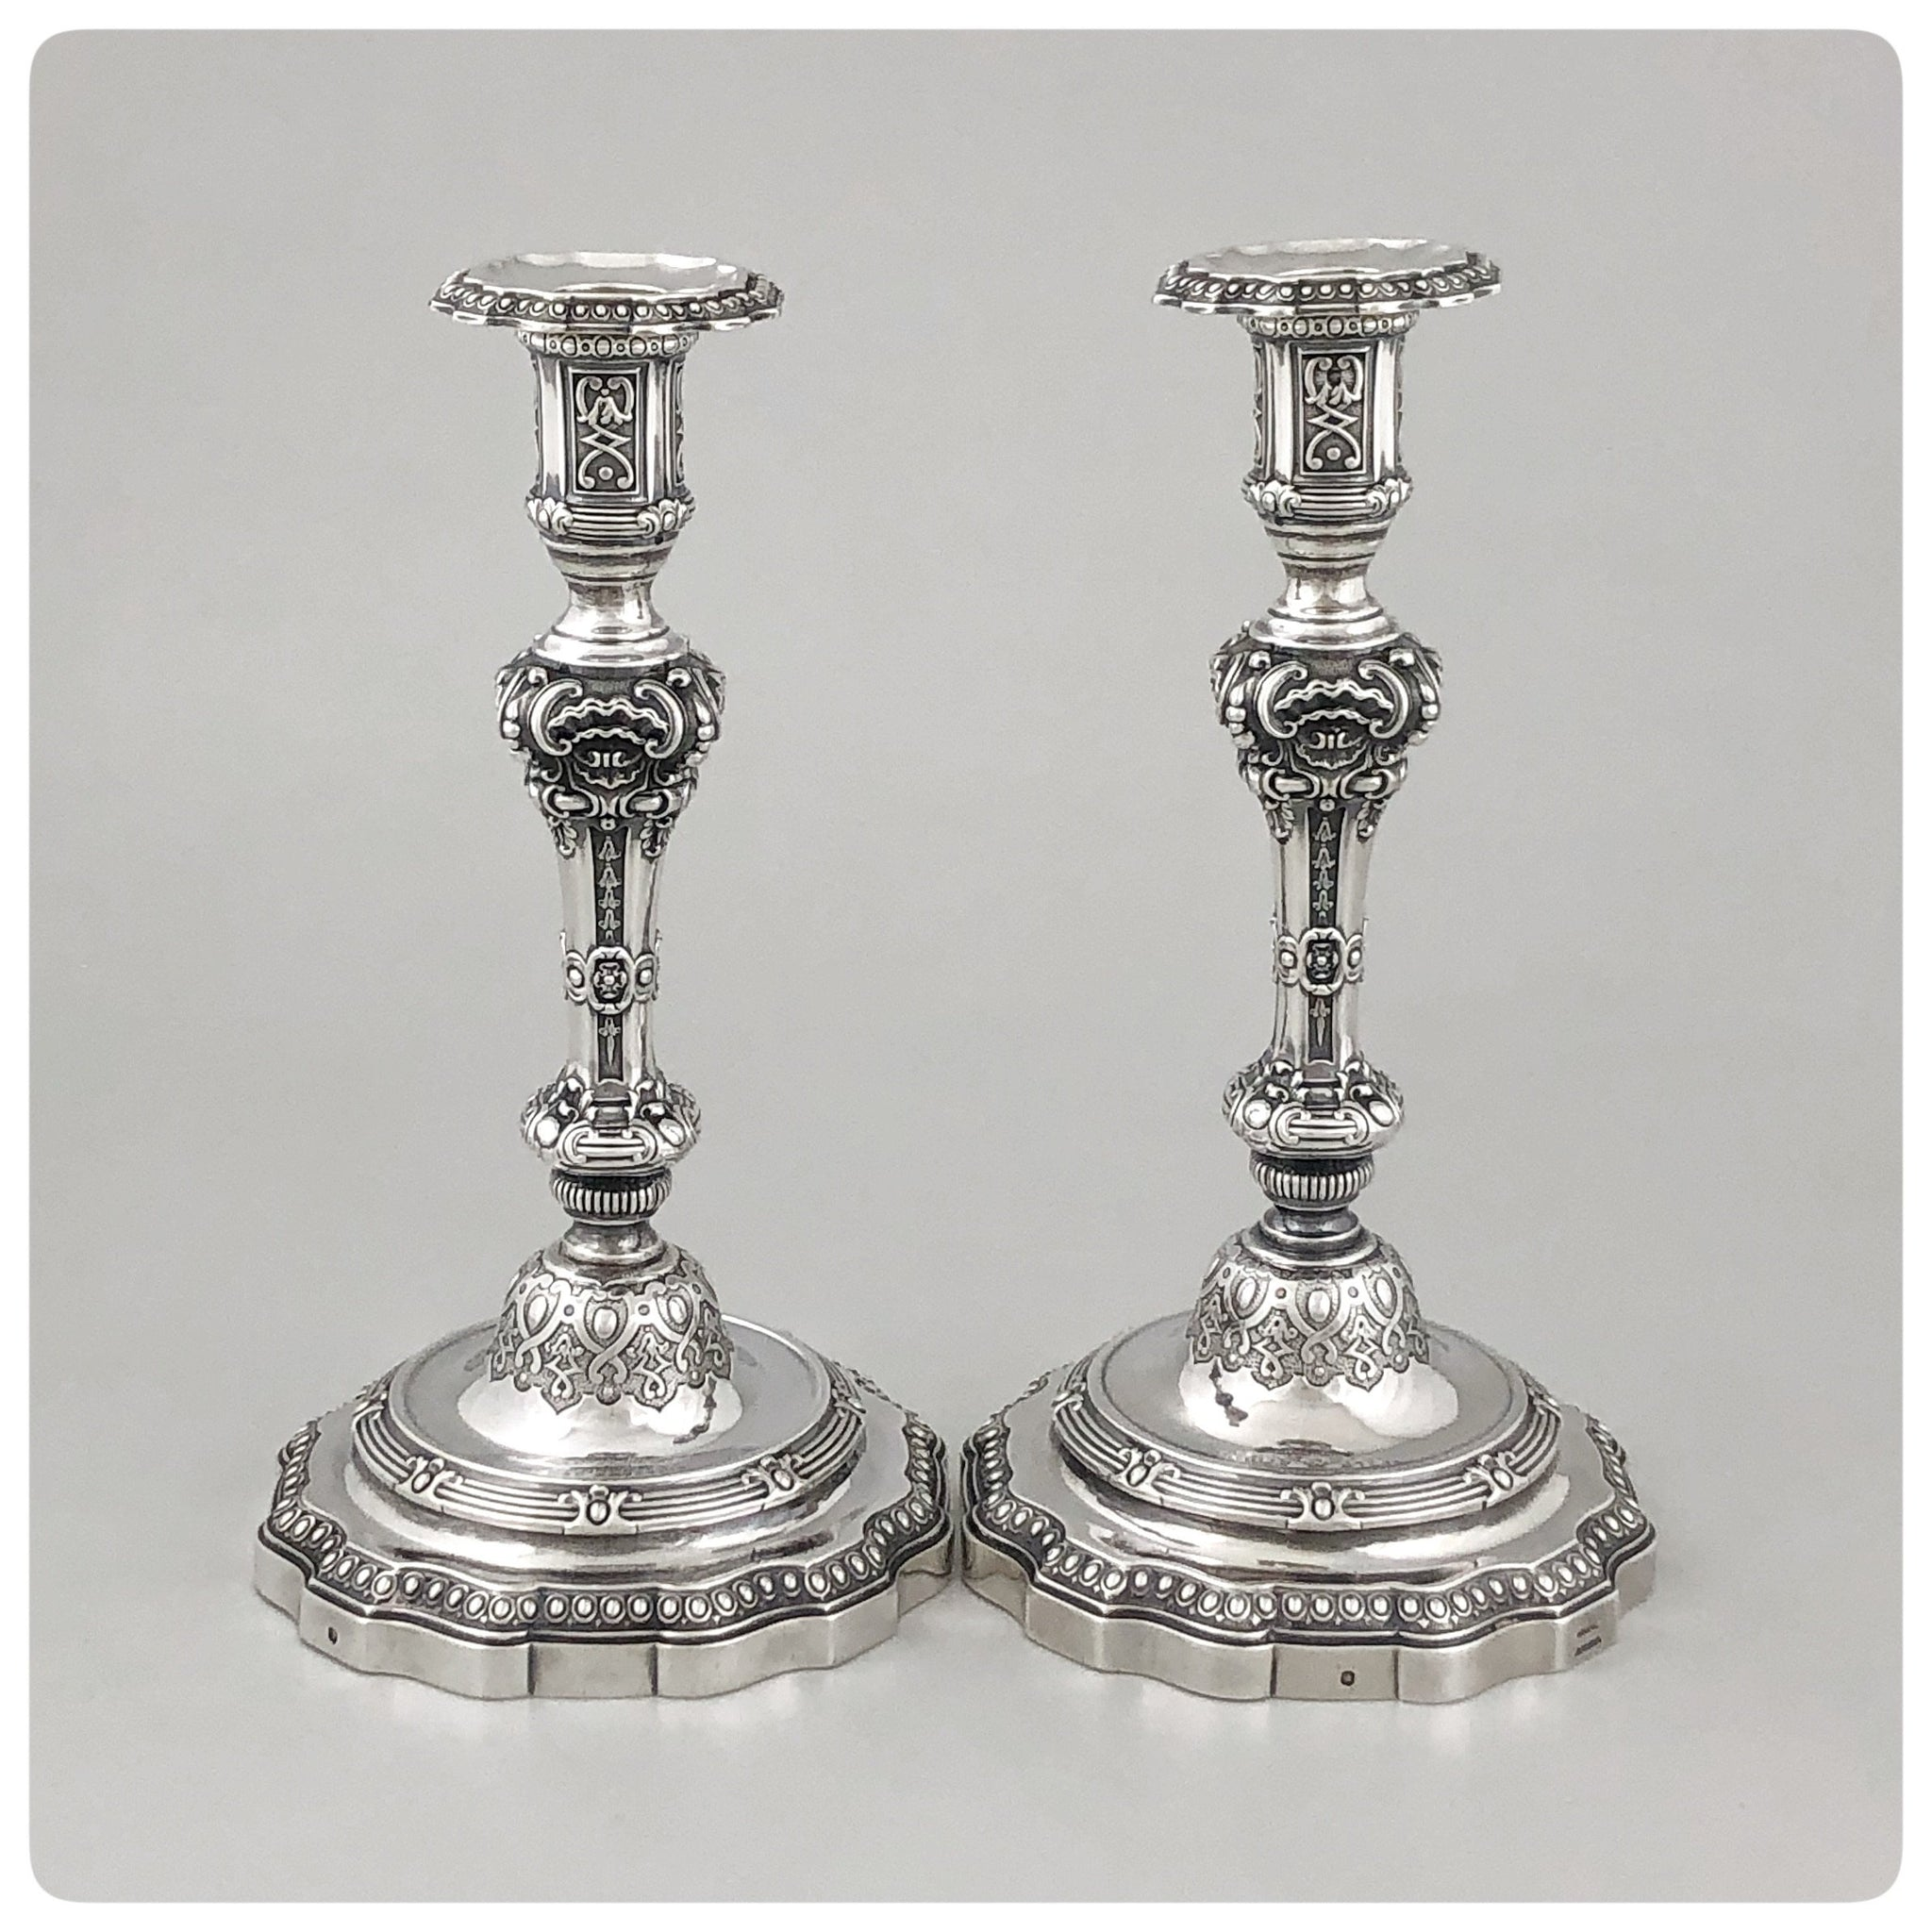 First Standard (950/1000) Pair of Candlesticks, Gustave Odiot for Maison Odiot, Paris, 1865-1897 - The Silver Vault of Charleston